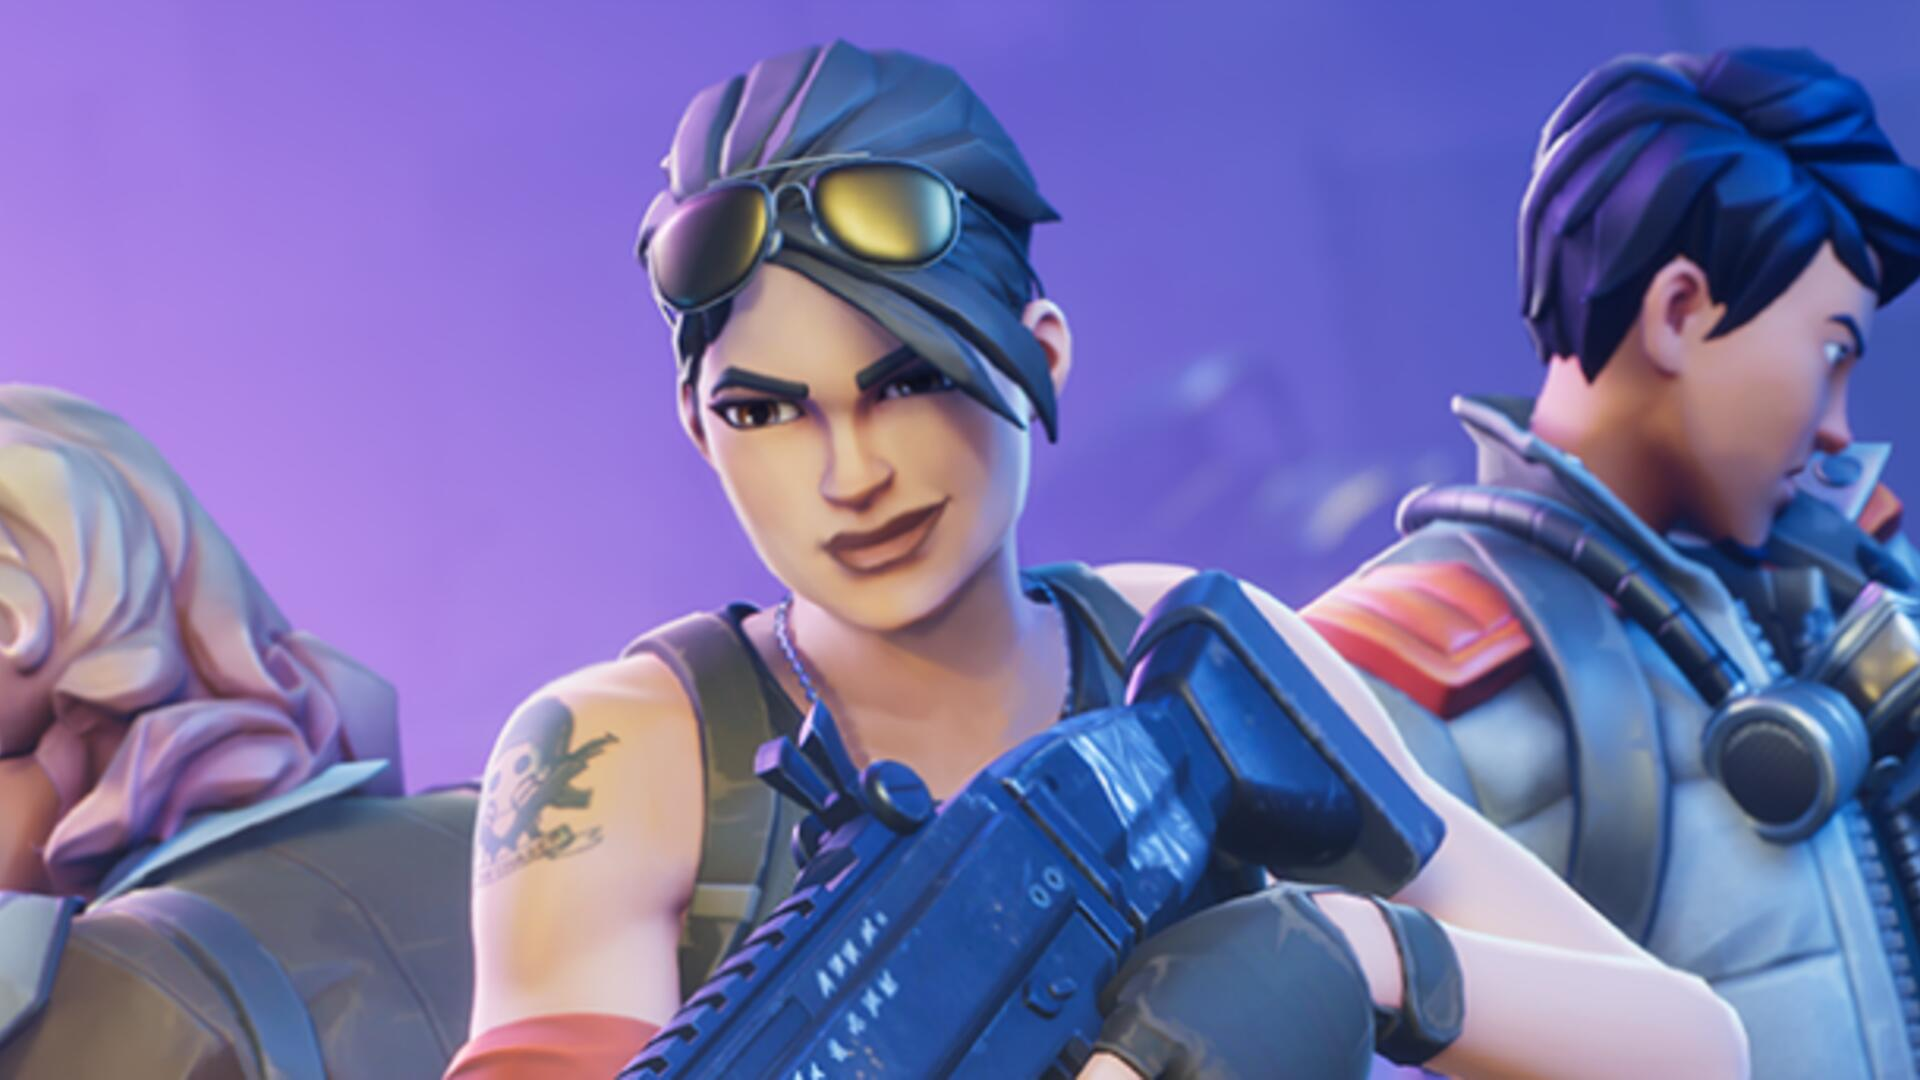 Sprinting in Fortnite Save the World no Longer Costs Energy, and People are Really Happy About it